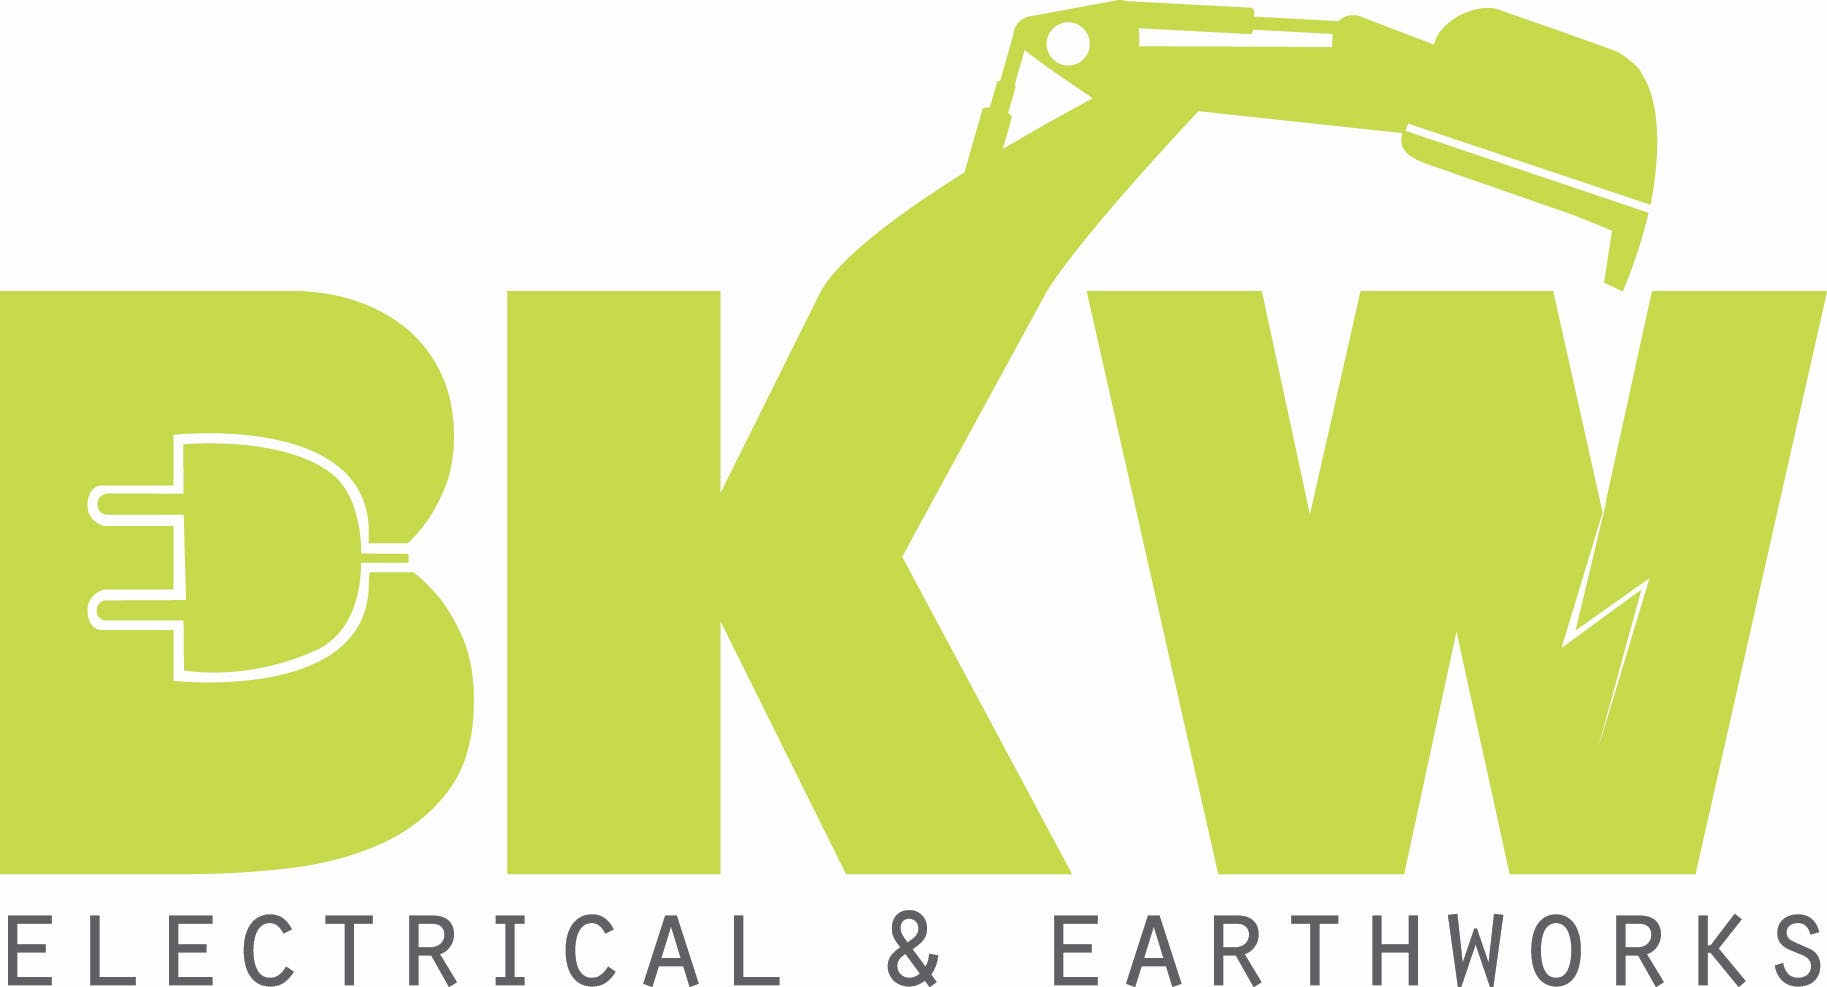 BKW Electrical and Earthworks